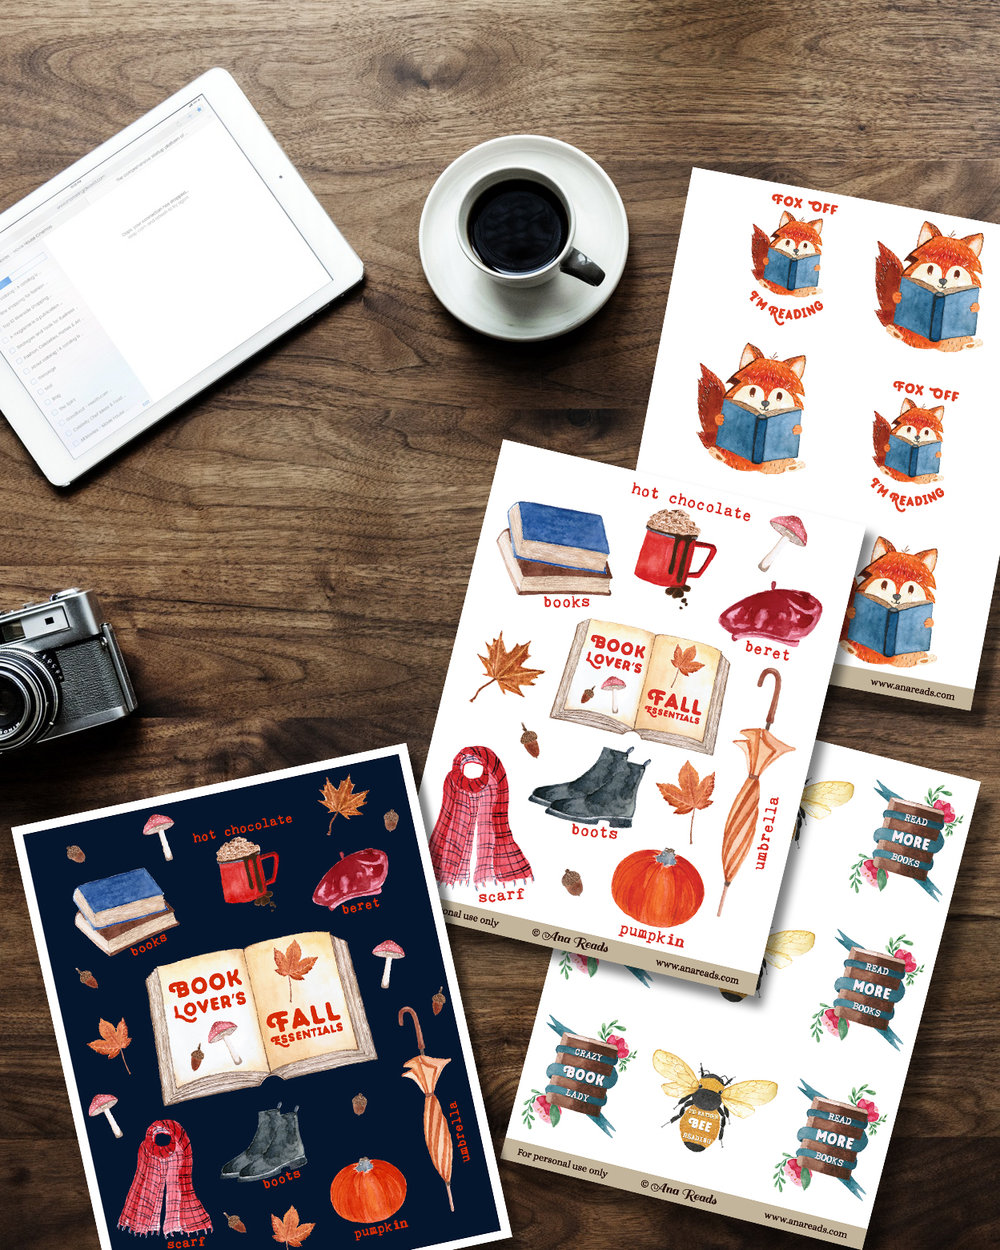 free planner stickers - book lover fall poster